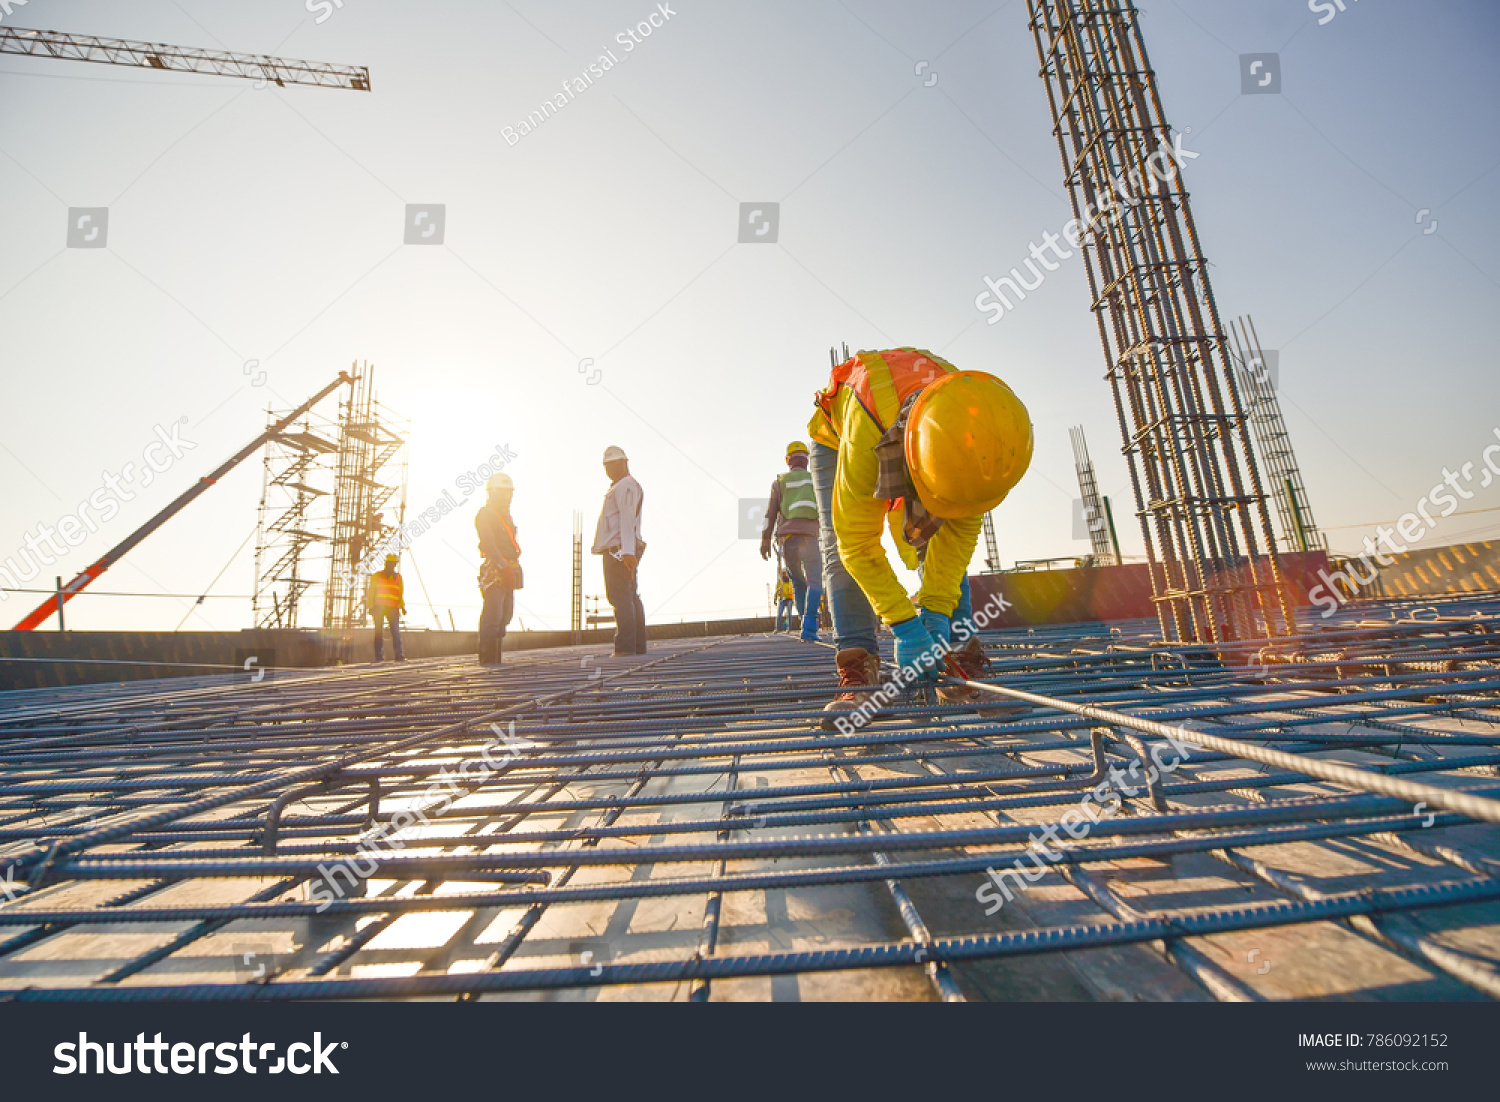 Construction workers fabricating steel reinforcement bar at the construction site #786092152